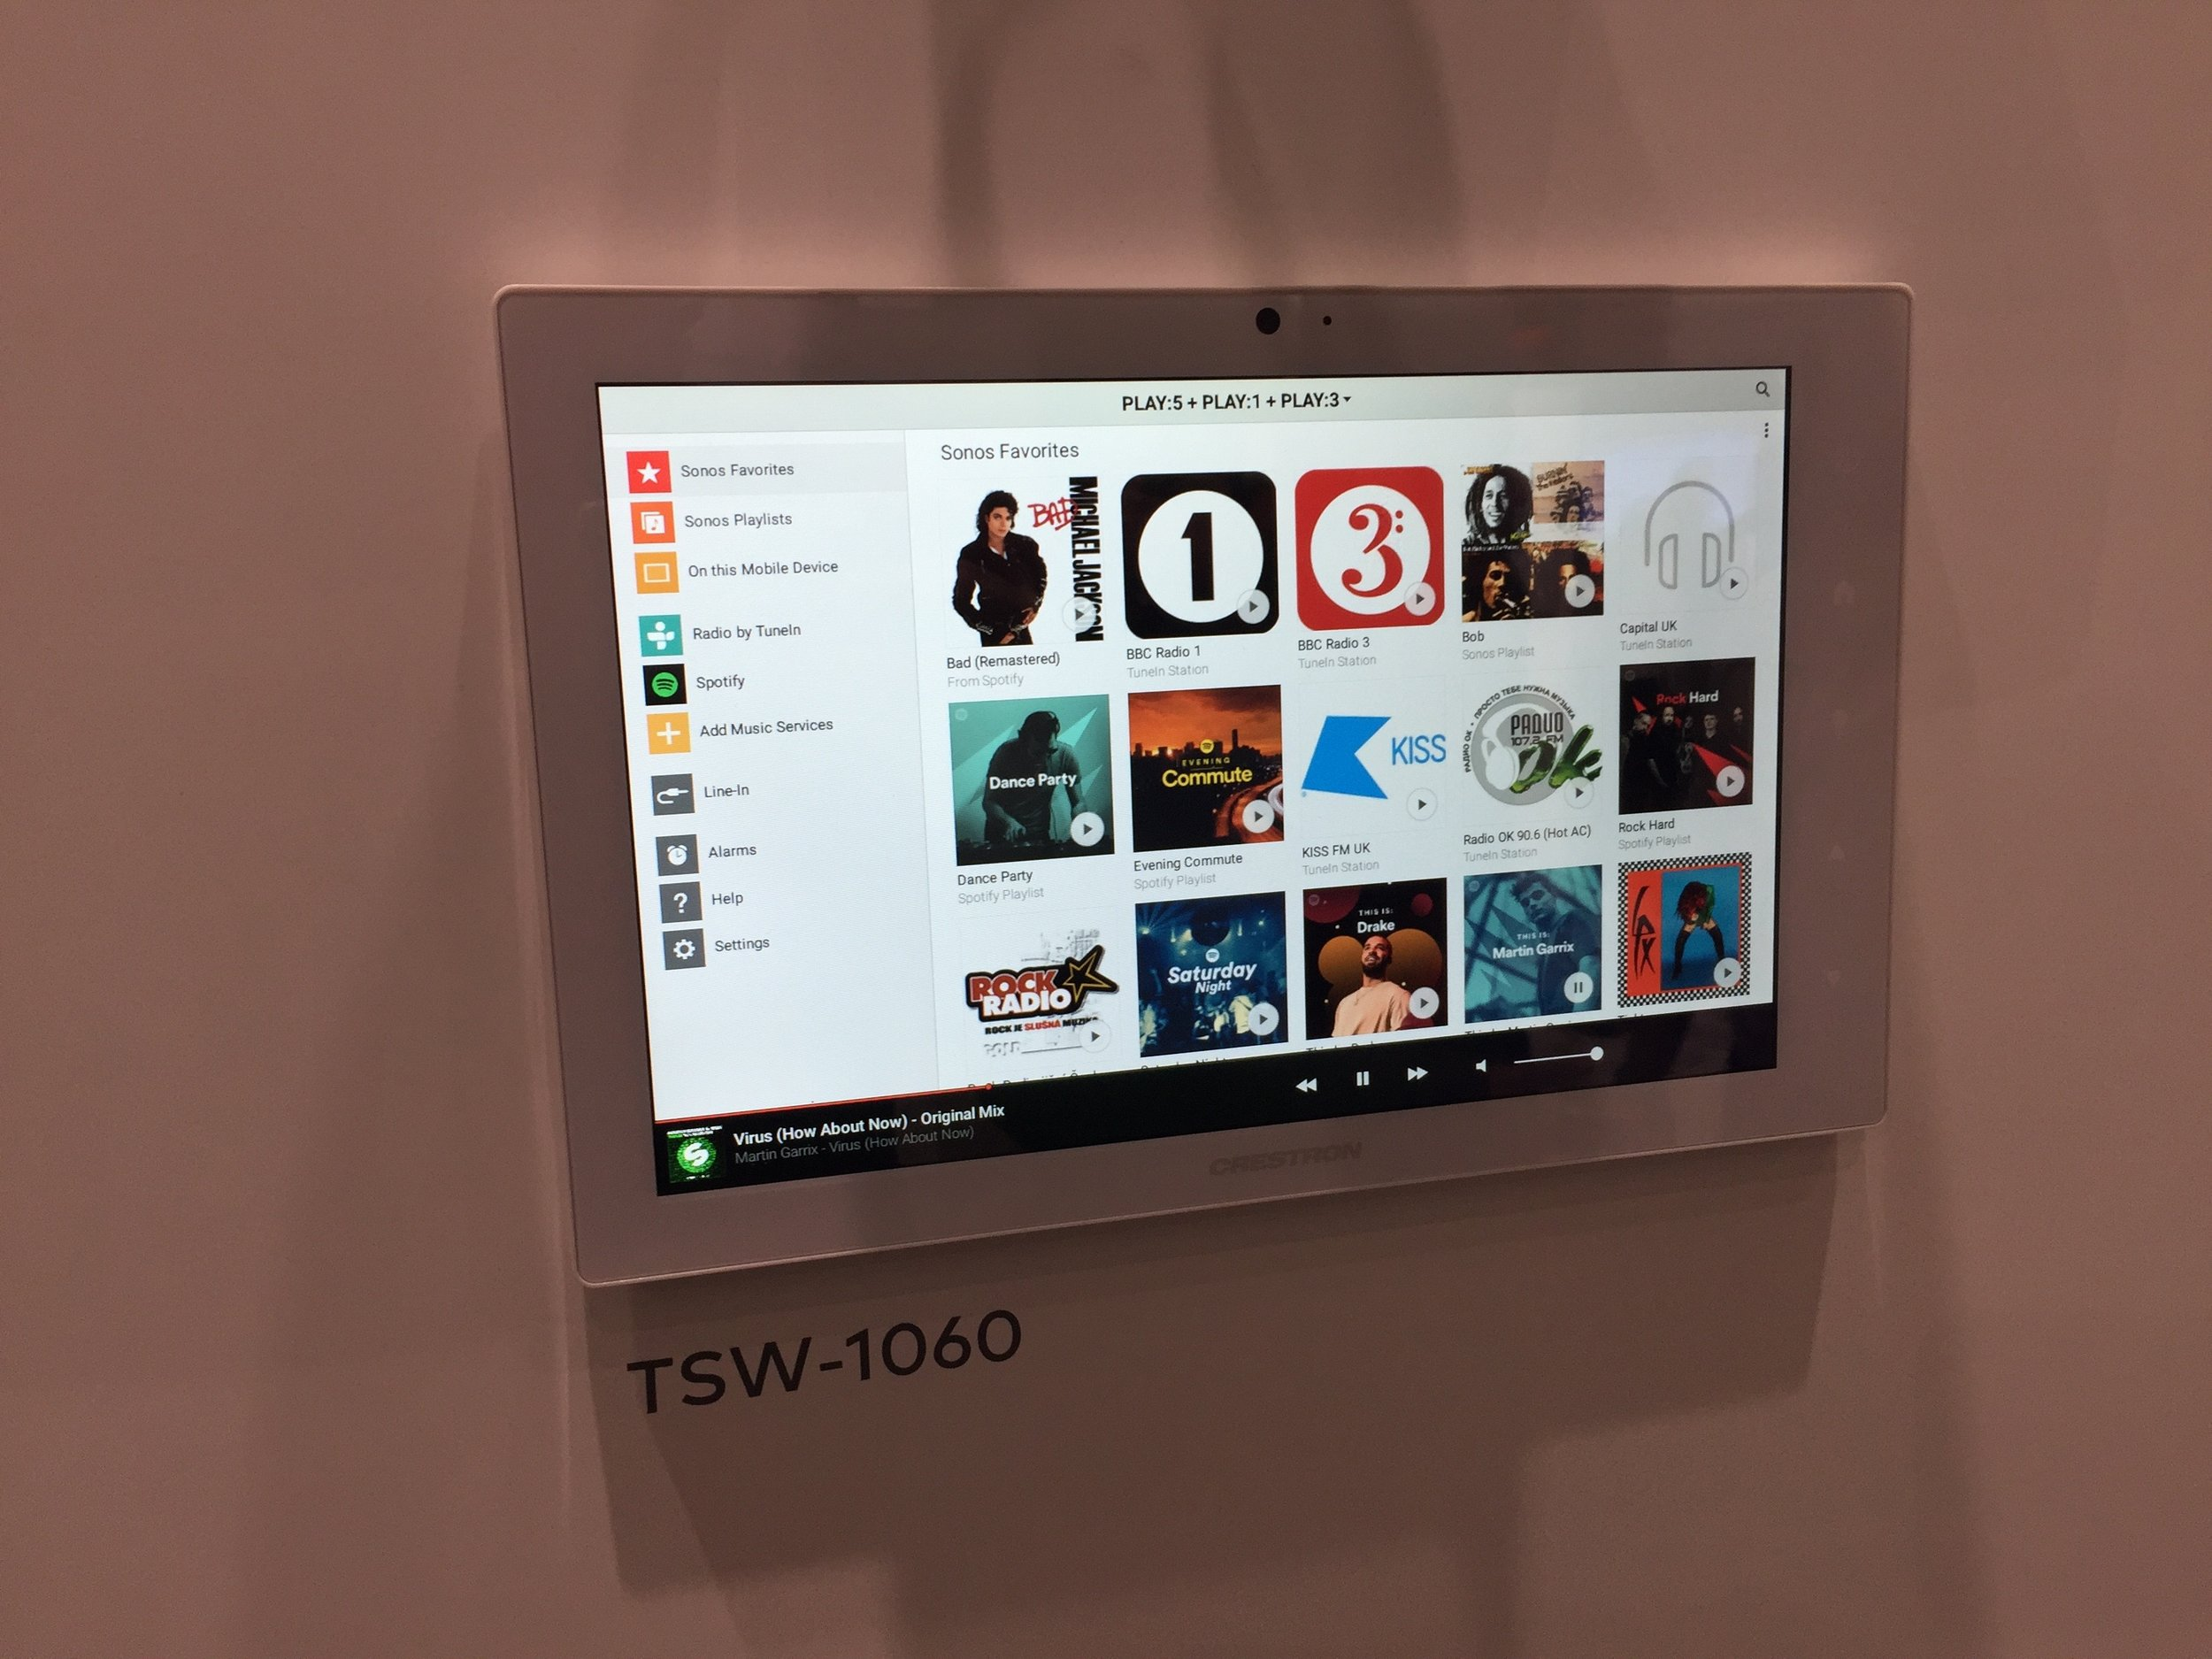 Crestron - Sonos app built natively into touch panels